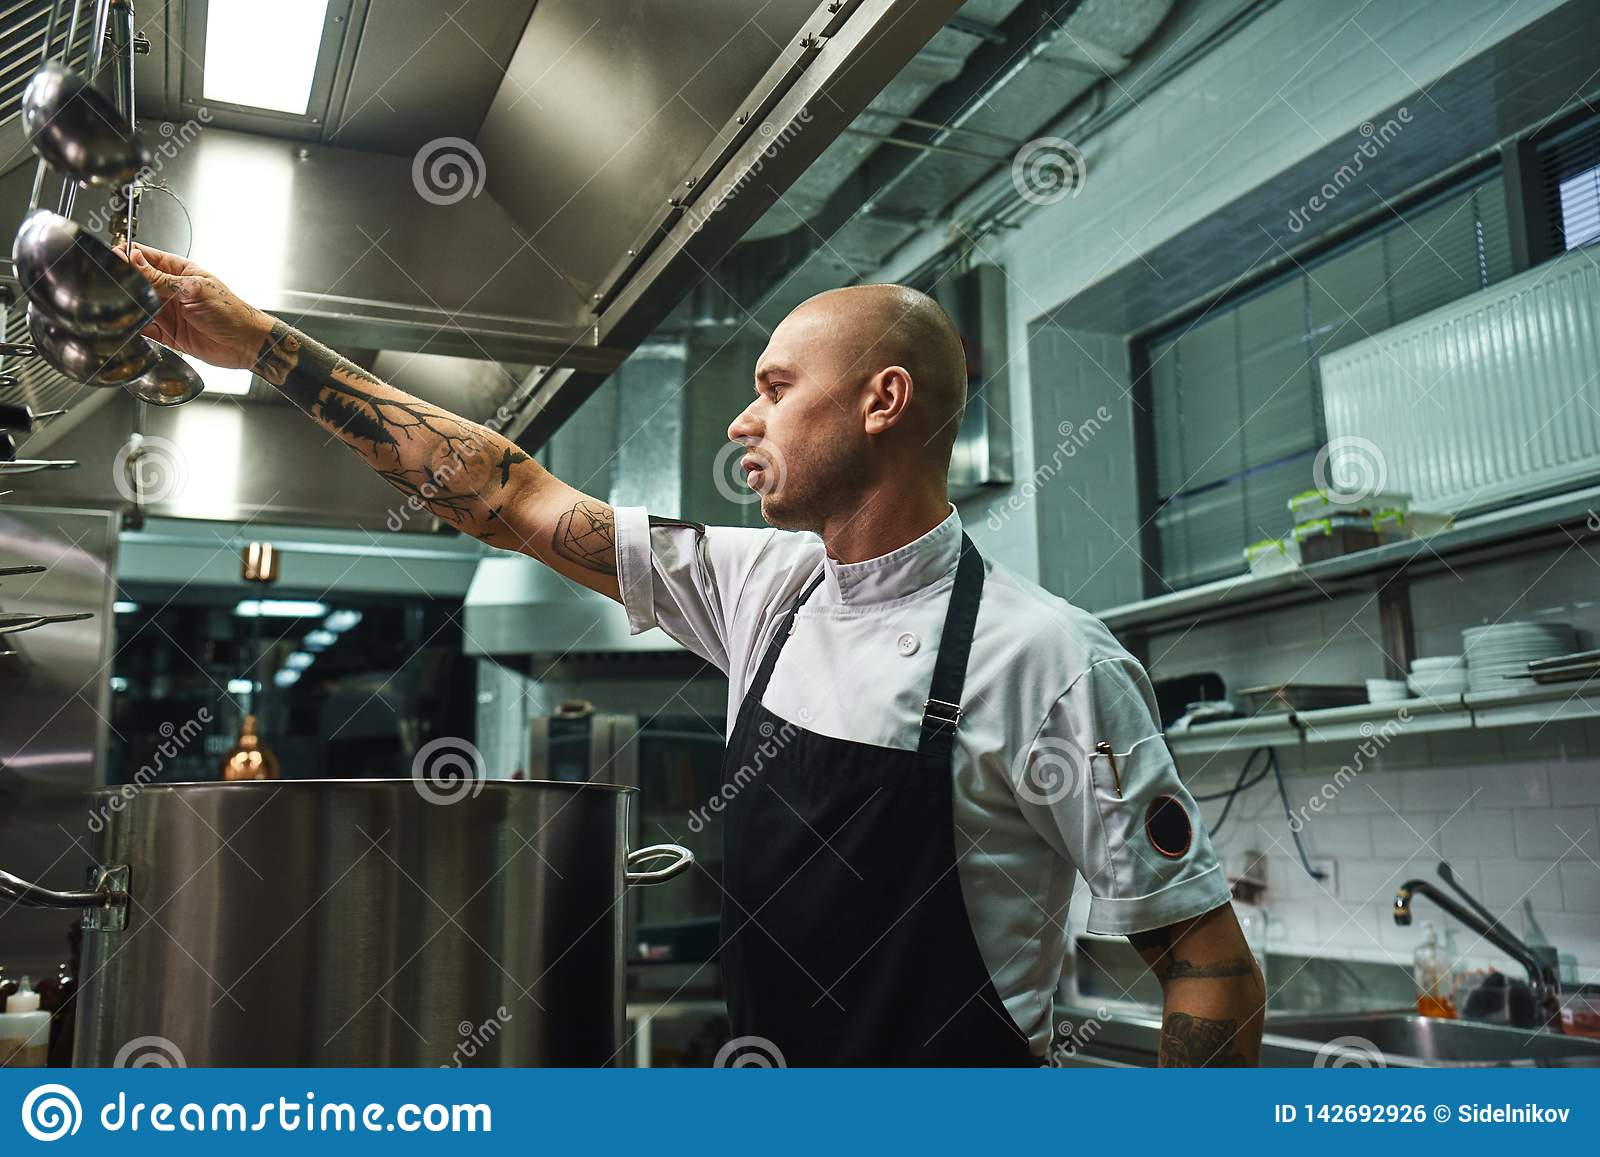 Famous soup. SIde view of attractive bald chef in apron taking a ladle for soup cooking while standing in a restaurant